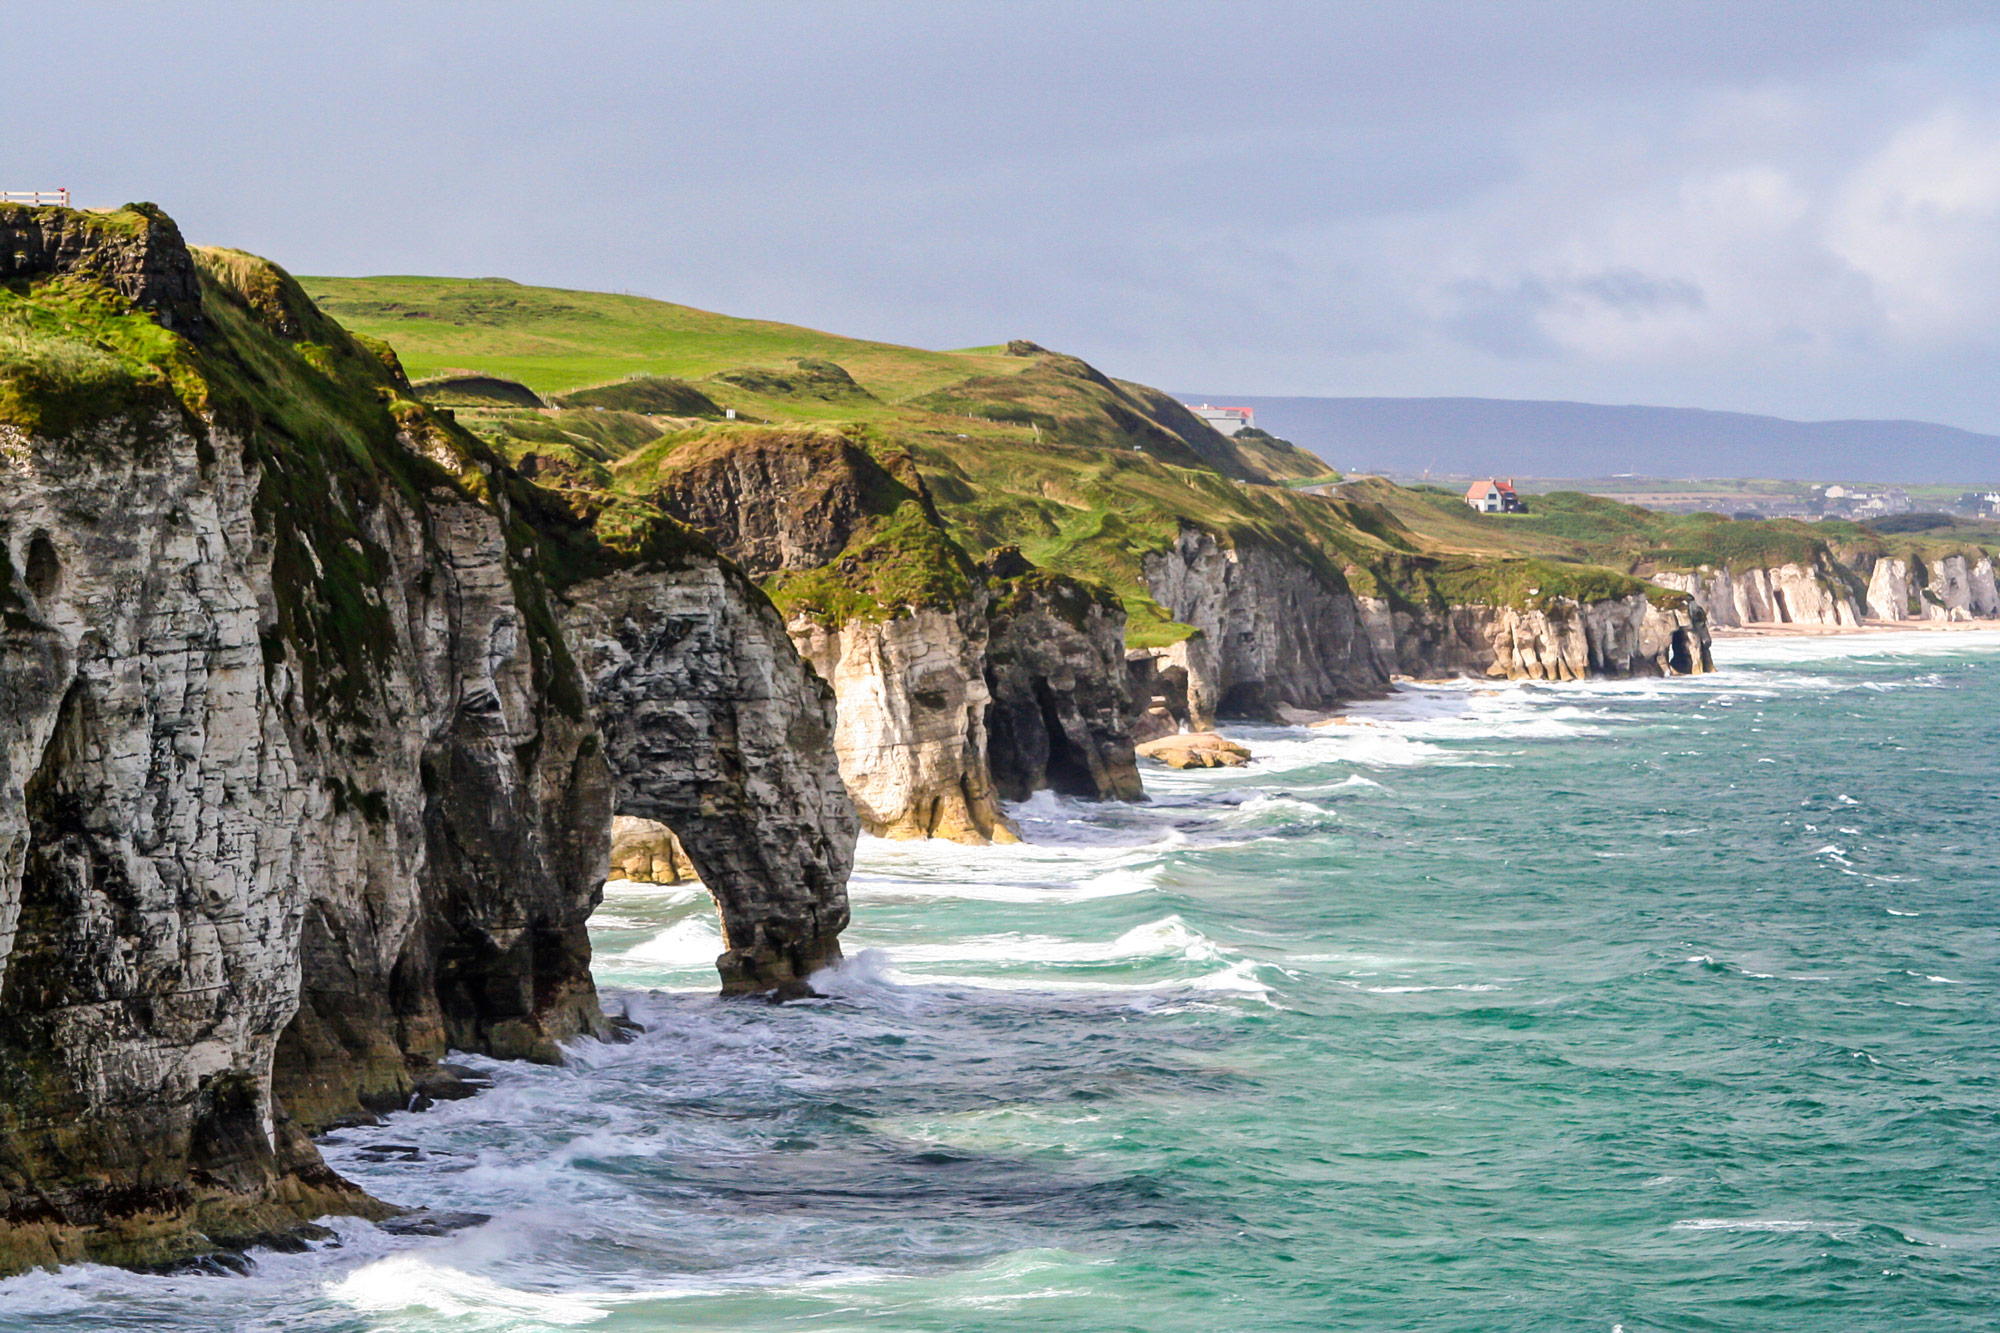 Irish coast line - cliffs meet sea